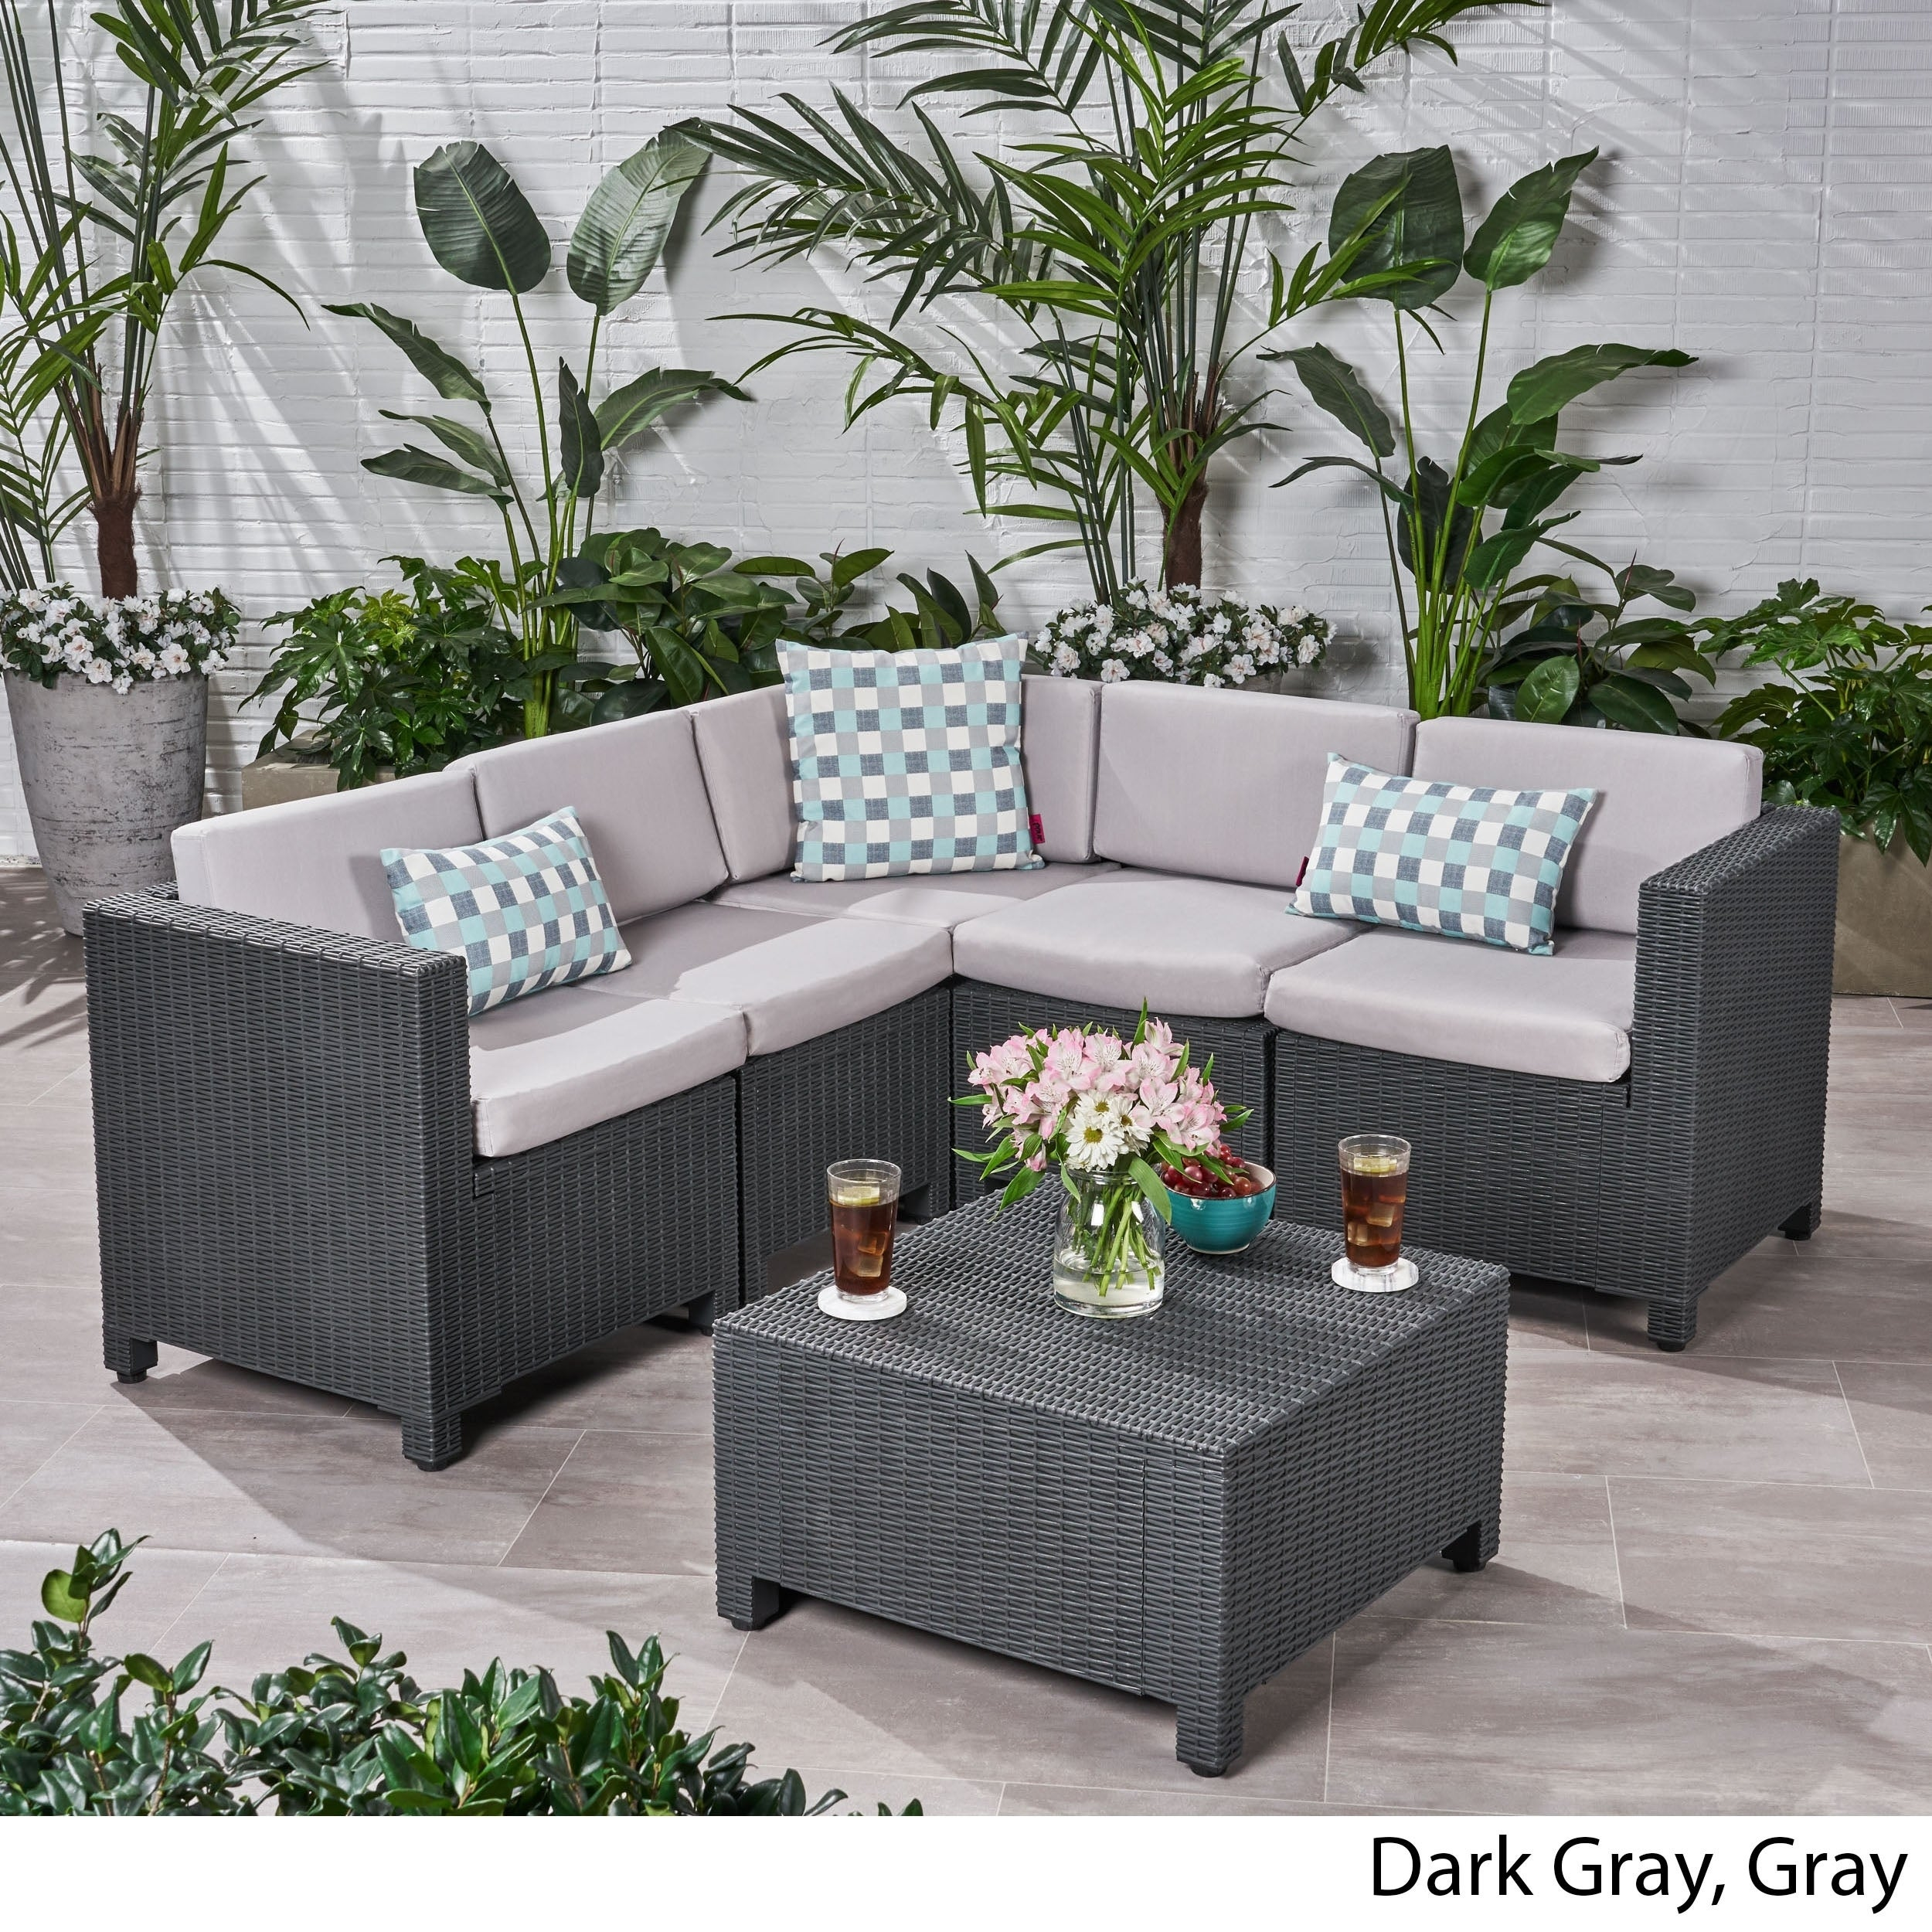 Awe Inspiring Waverly Outdoor 5 Seater Faux Wicker Sectional Sofa Set With Cushions By Christopher Knight Home Ncnpc Chair Design For Home Ncnpcorg